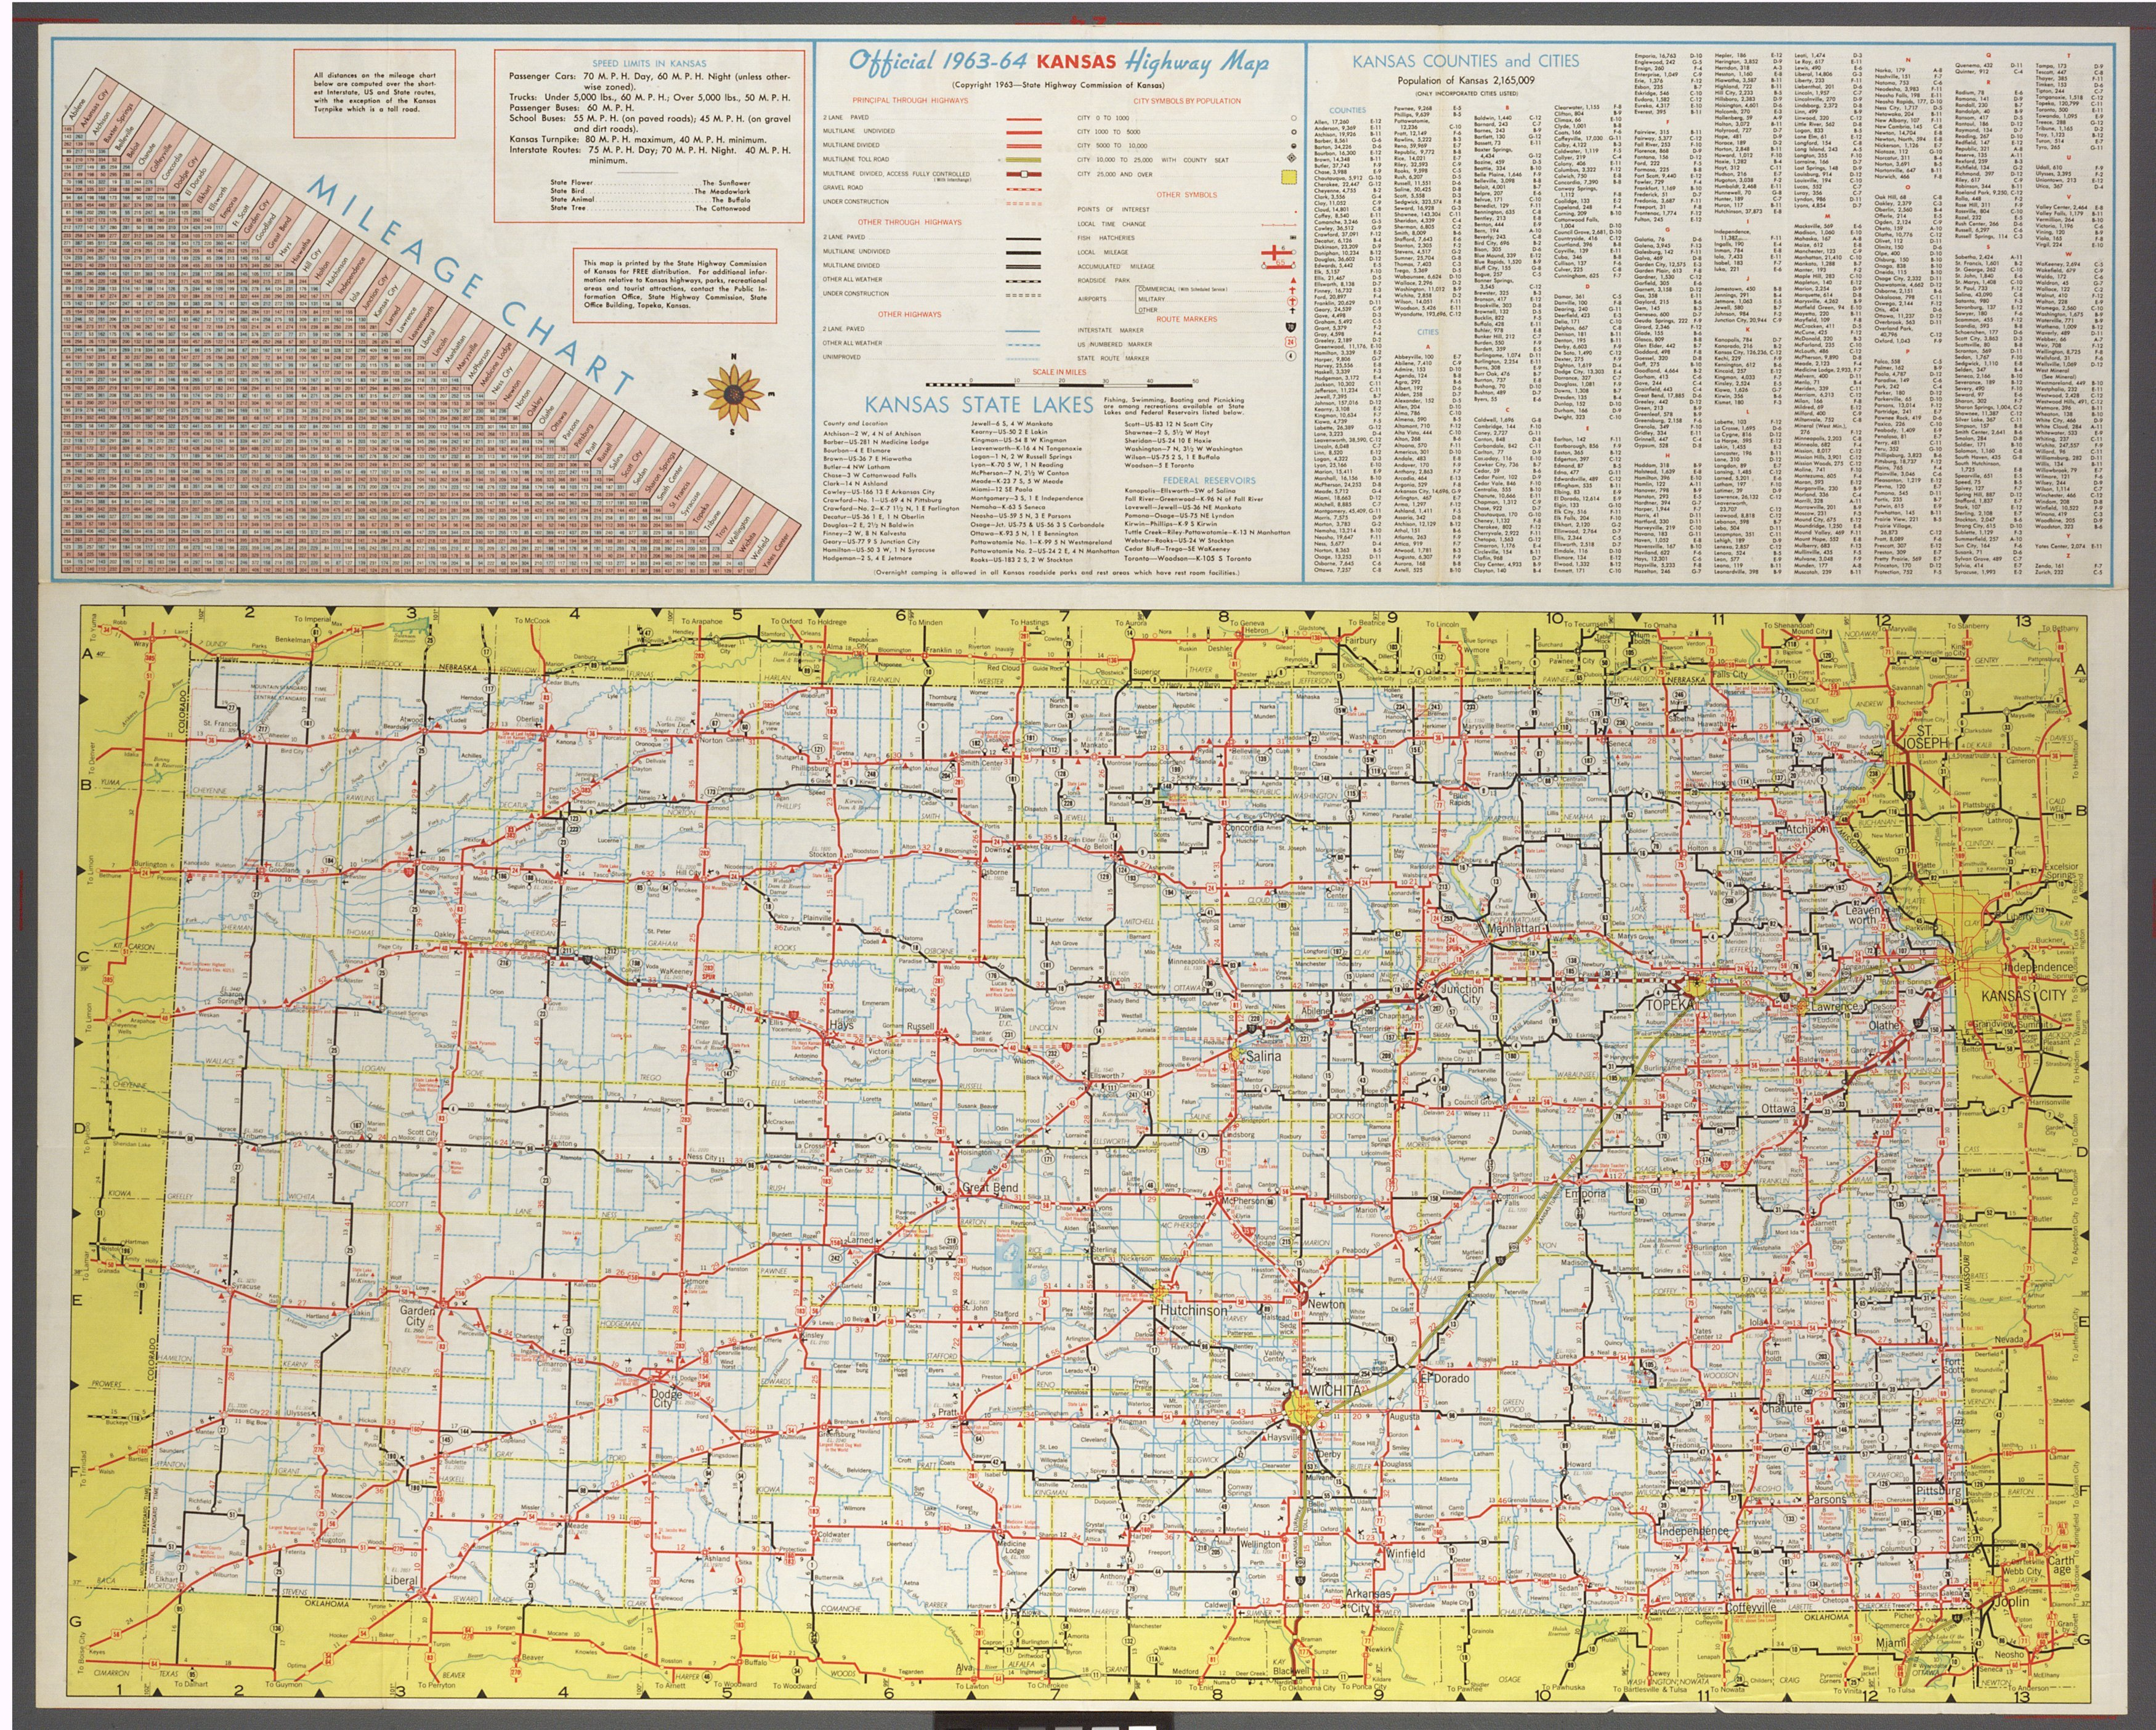 Official 1963-64 Kansas highway map - Kansas Memory - Kansas ... on ks highway map, western kansas highway map, missouri hwy map, kansas road map with cities,